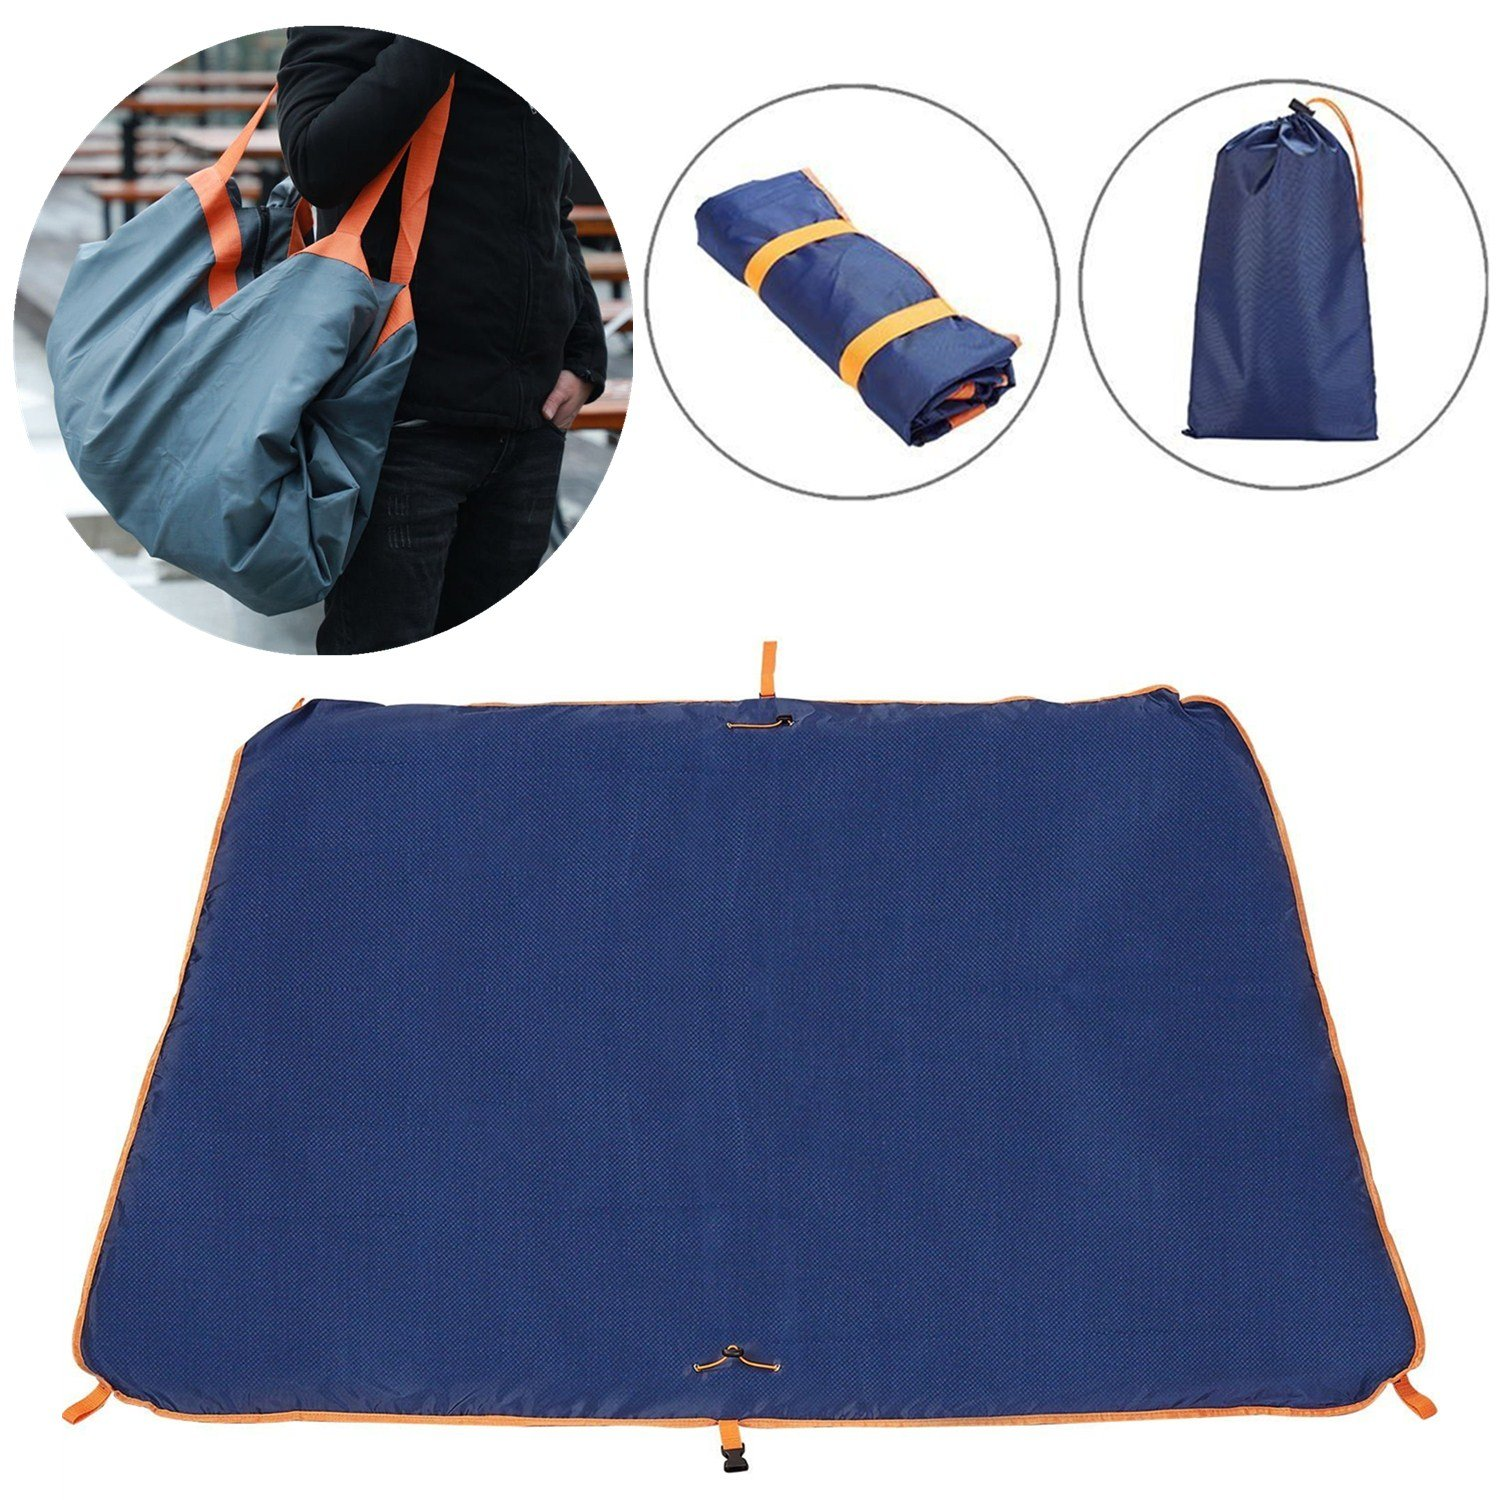 TOP-Max Camping Blanket Beach Picnic Mat Multifunction Camping Hiking Tarp Waterproof Folded Bag Lightweight Compact Outdoor Ground Sheet Tarpaulin with 4 Fixing Hook & 1 Drawstring Pouch